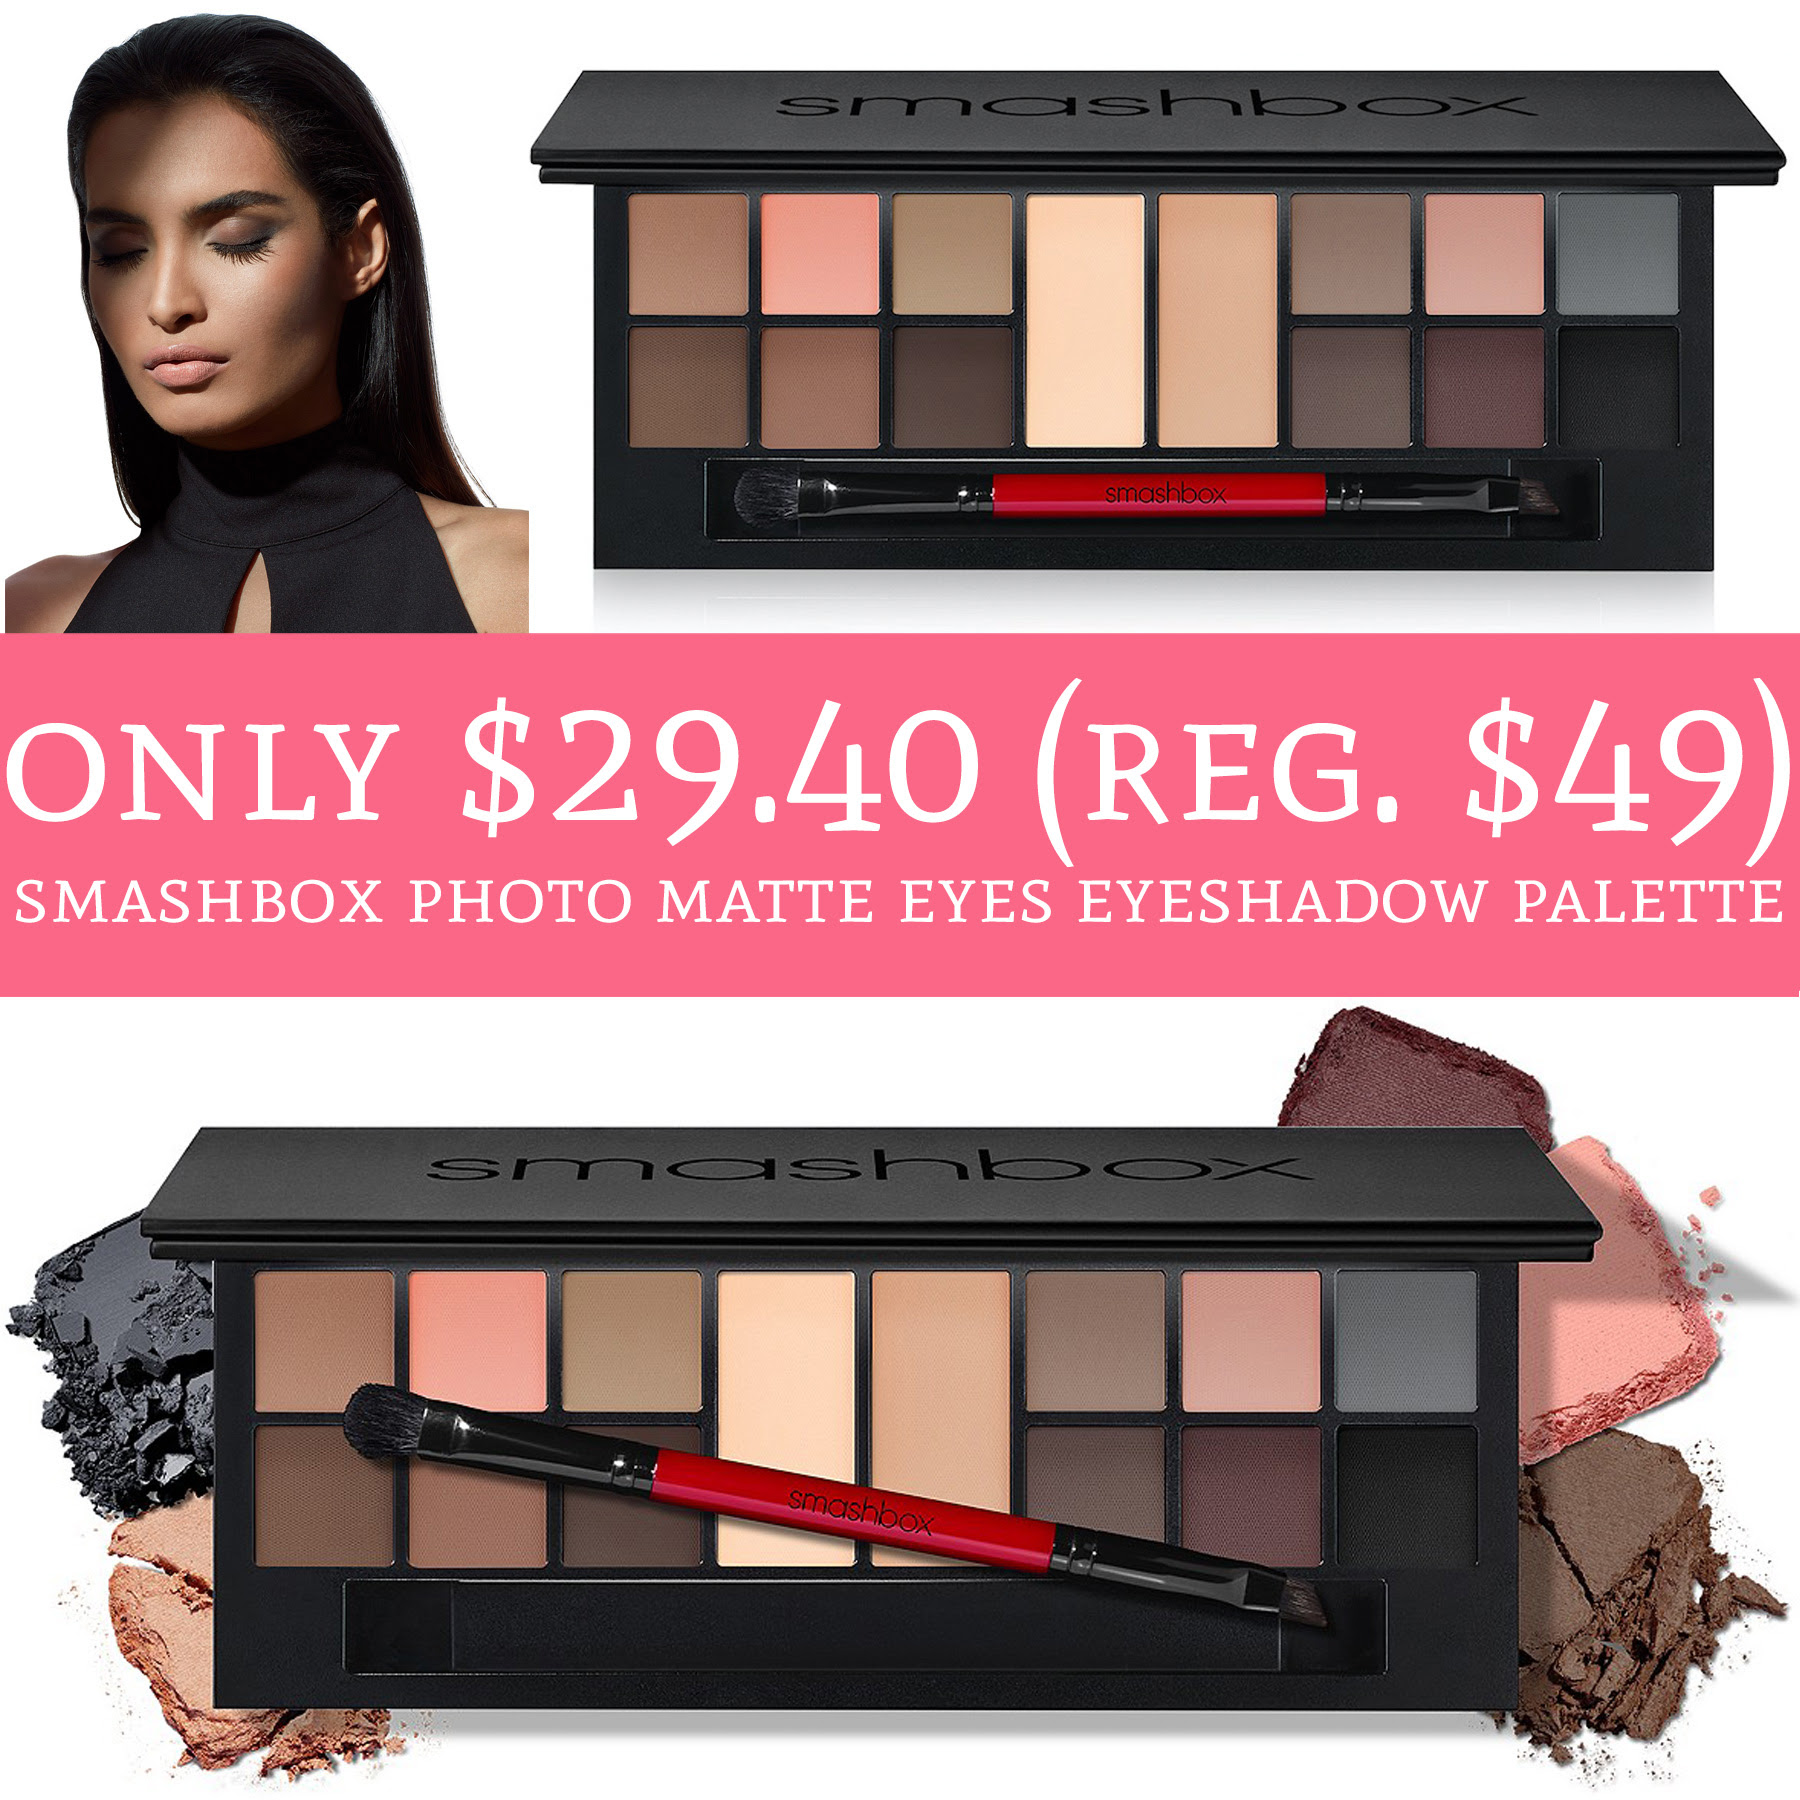 Only 2940 Regular 49 Smashbox Photo Matte Eyes Eyeshadow